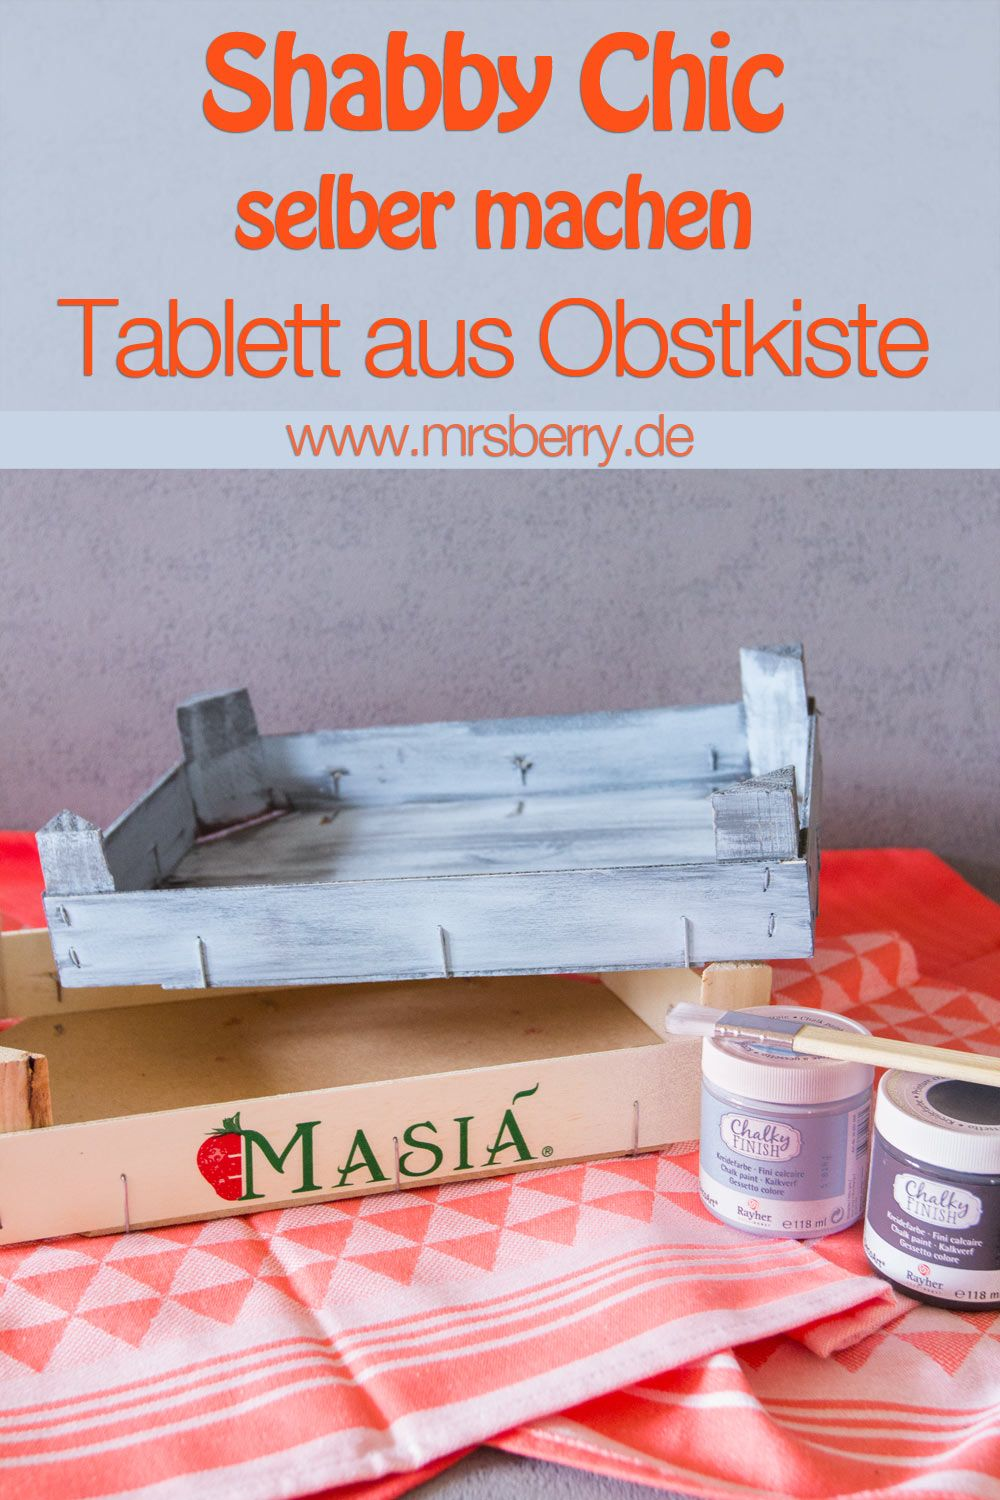 diy shabby chic tablett selber machen aus obstkiste diy pinterest shabby chic basteln. Black Bedroom Furniture Sets. Home Design Ideas